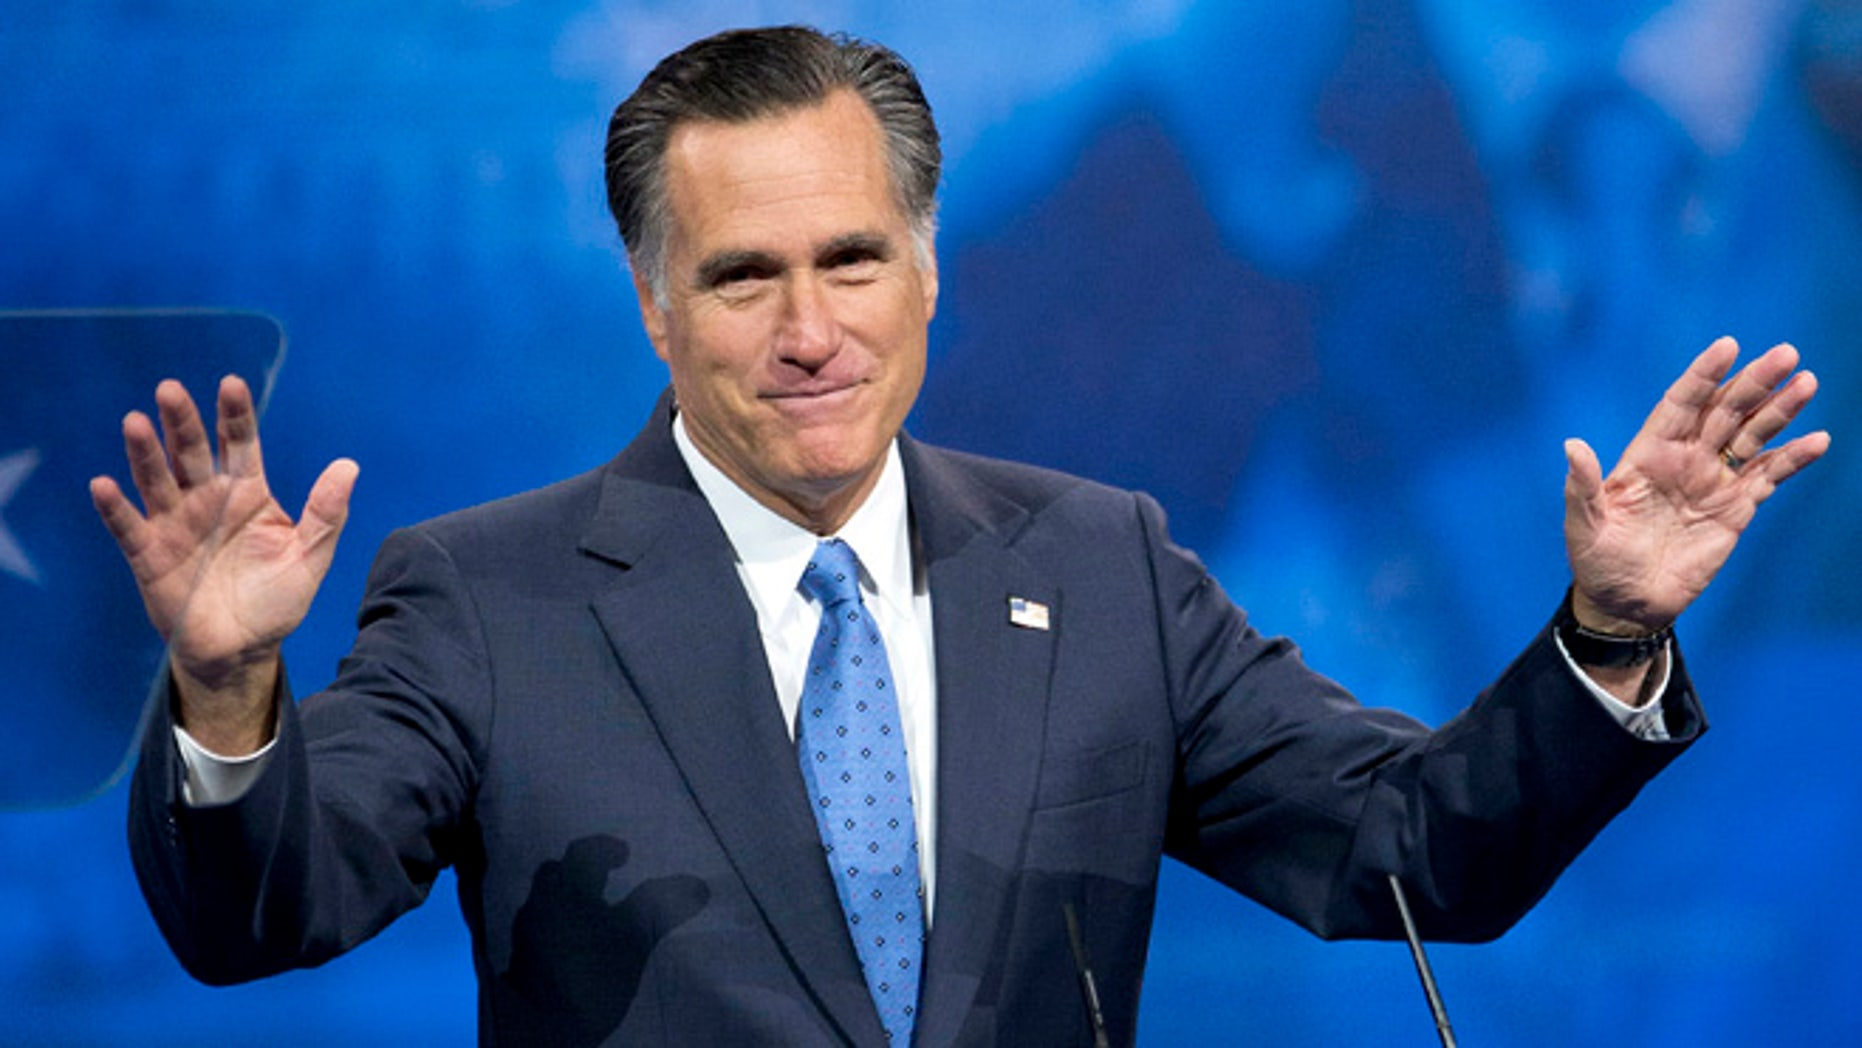 March 15, 2013: Former Massachusetts governor and 2012 Republican presidential candidate Mitt Romney speaks in National Harbor, Md.